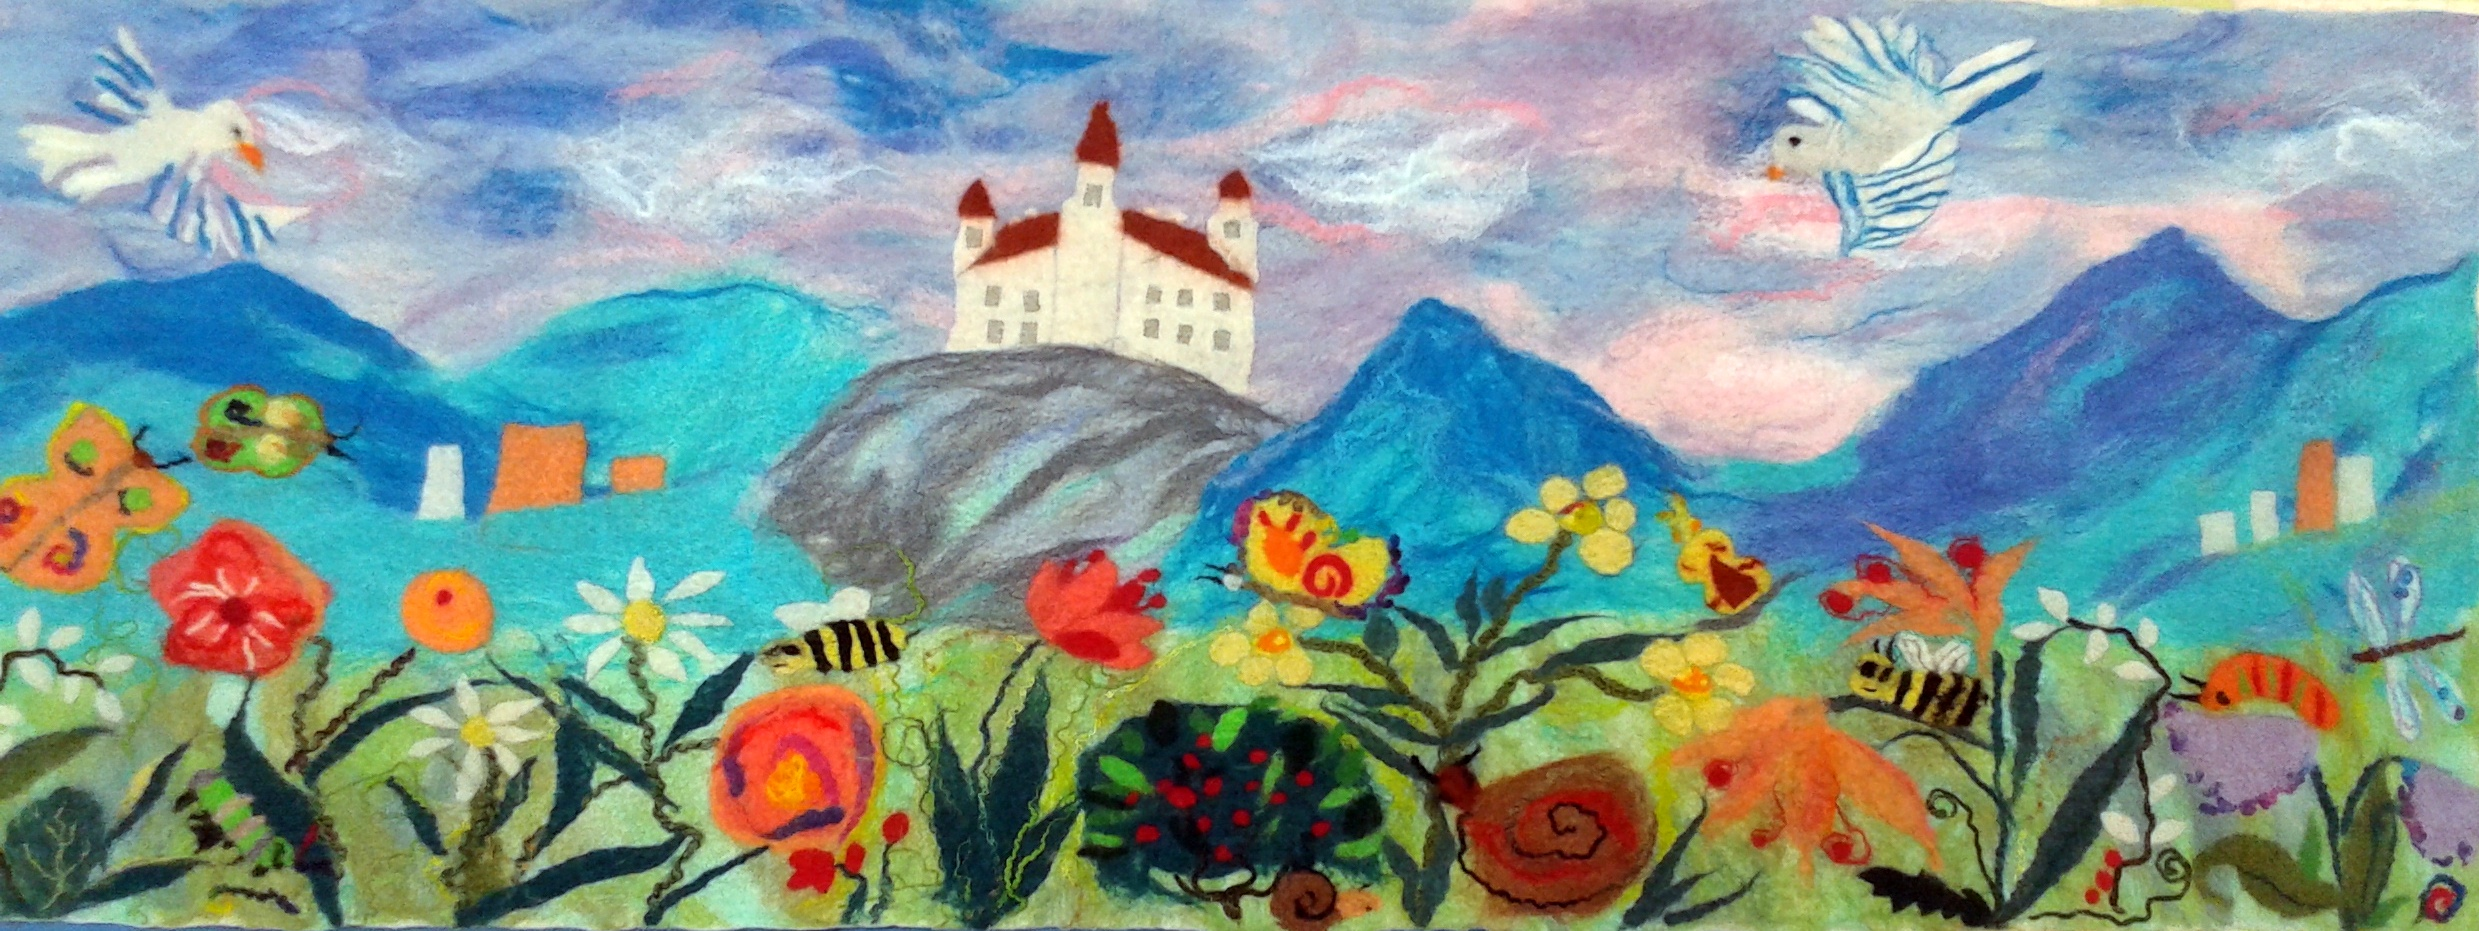 Our finished felted wall hanging